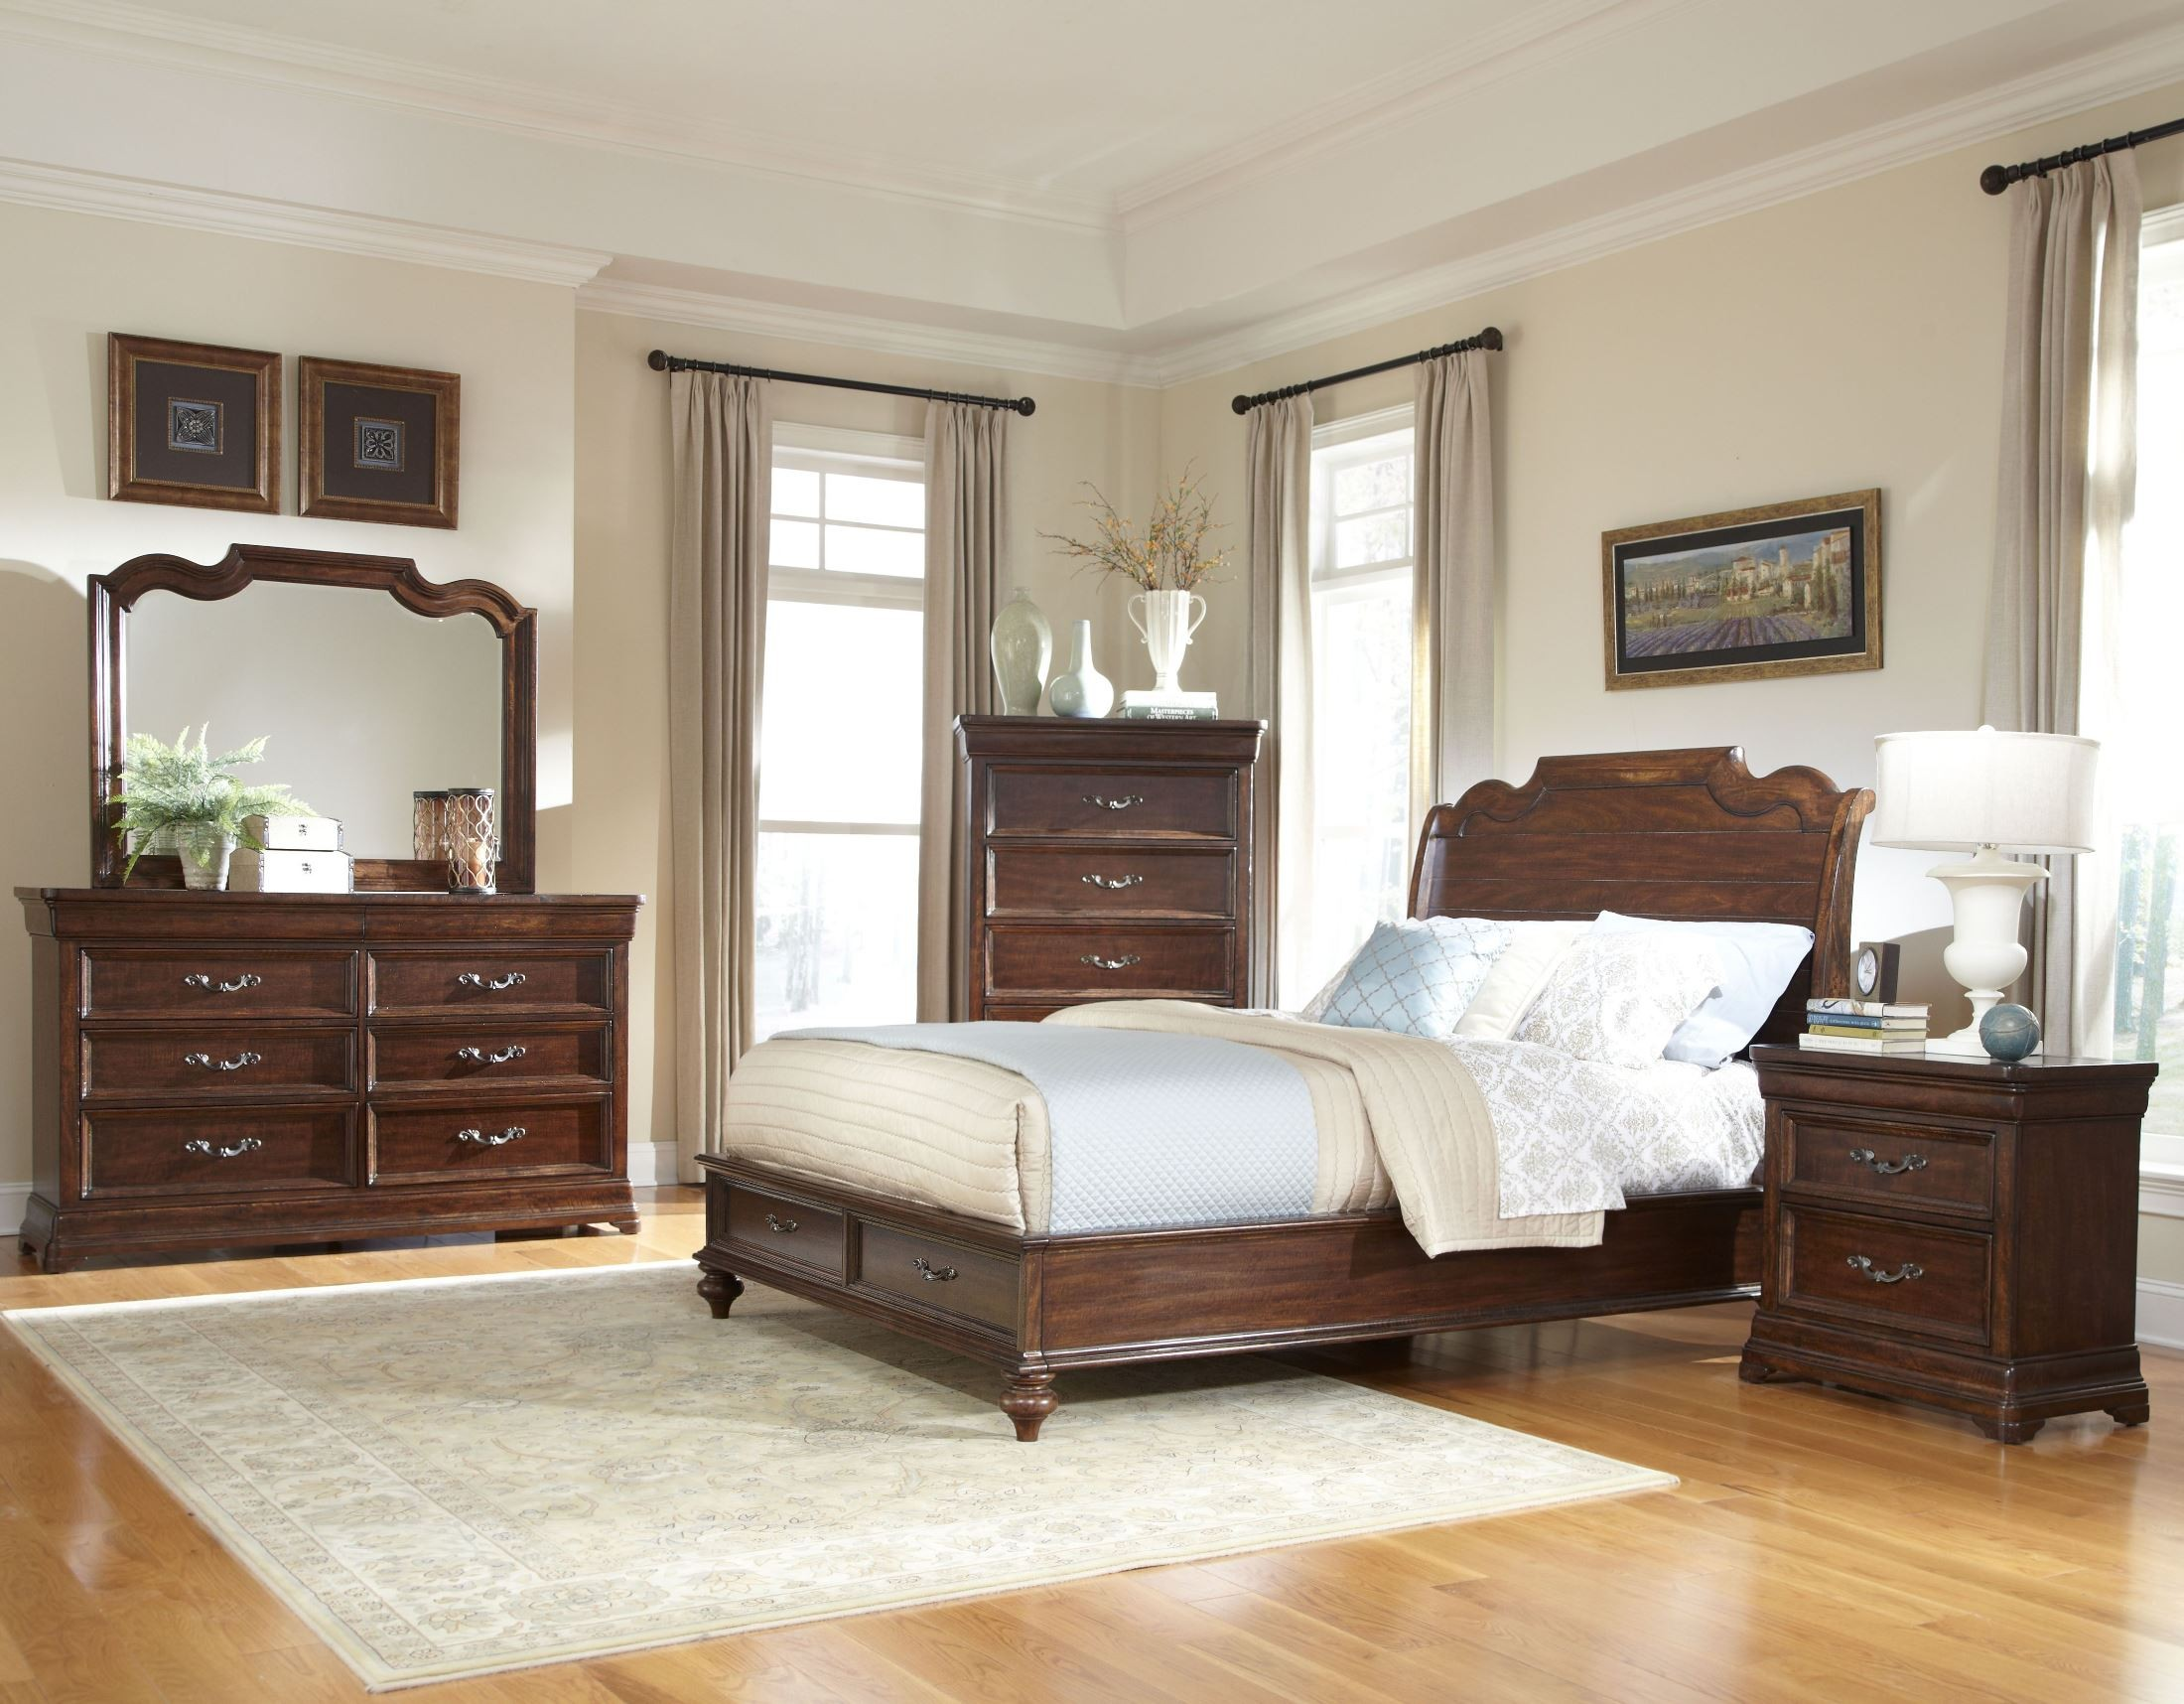 Signature Sleigh Storage Bedroom Set From American